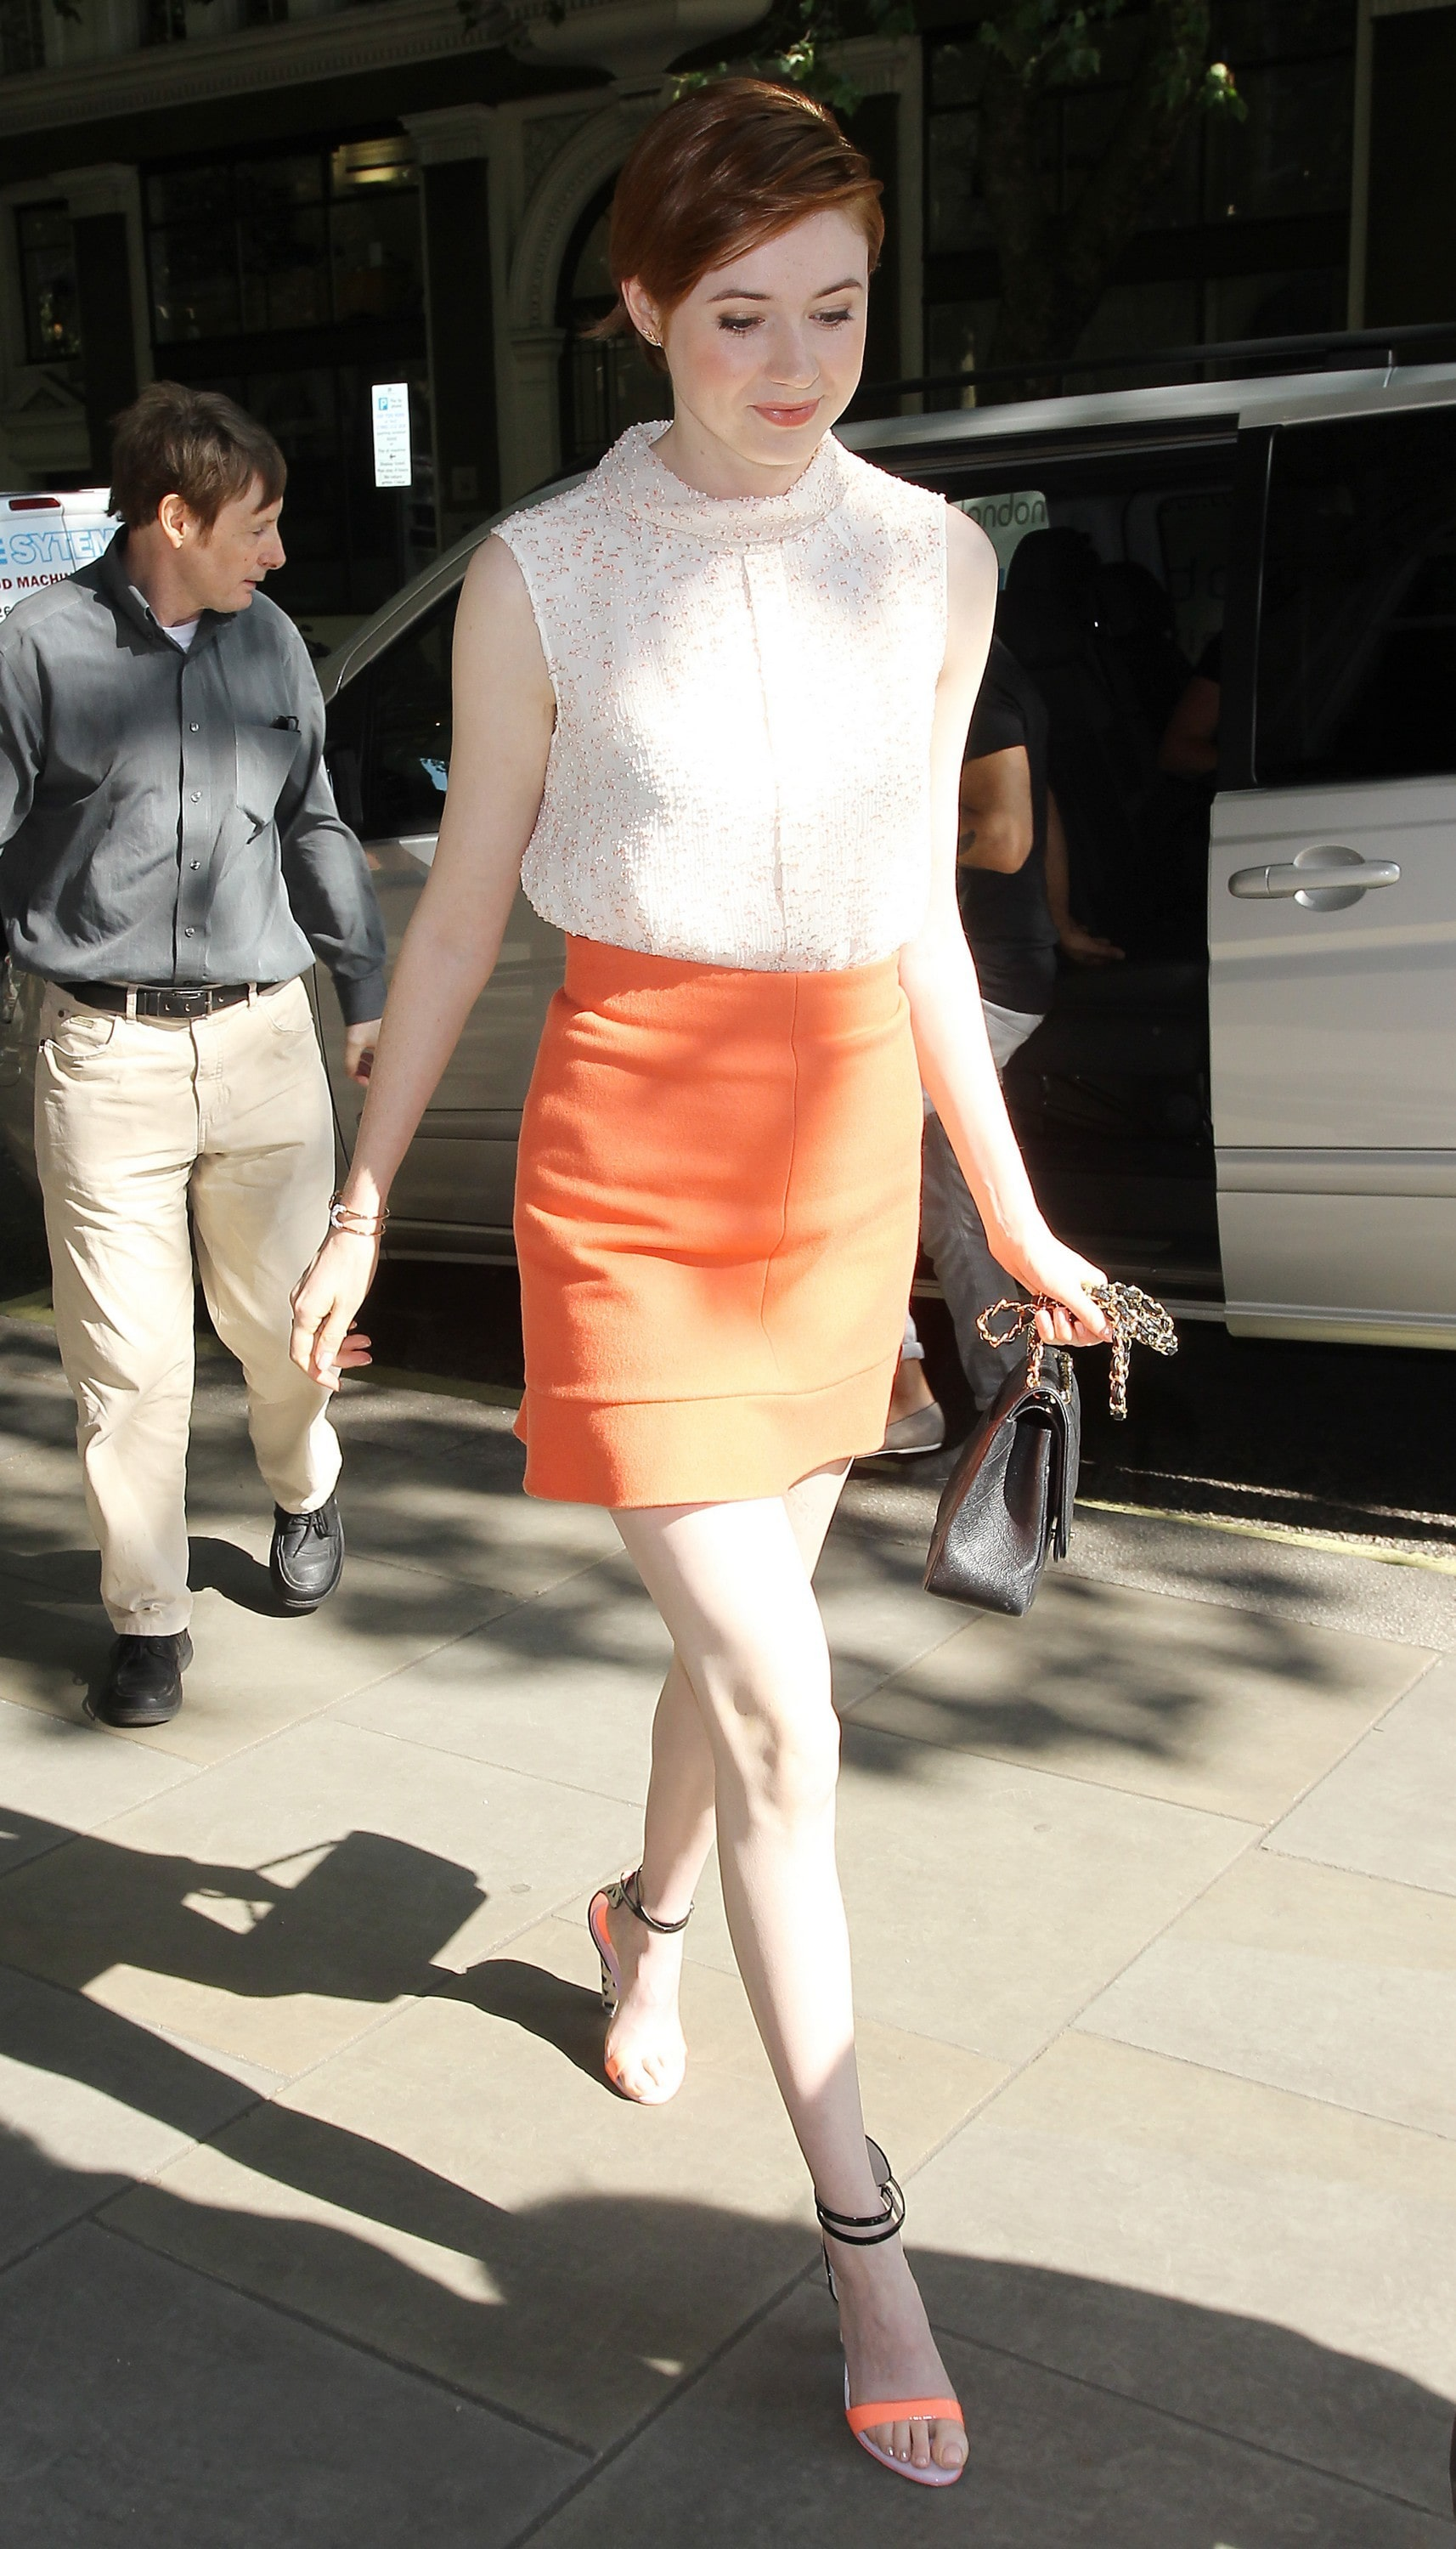 Karen Gillan feet awesome photos